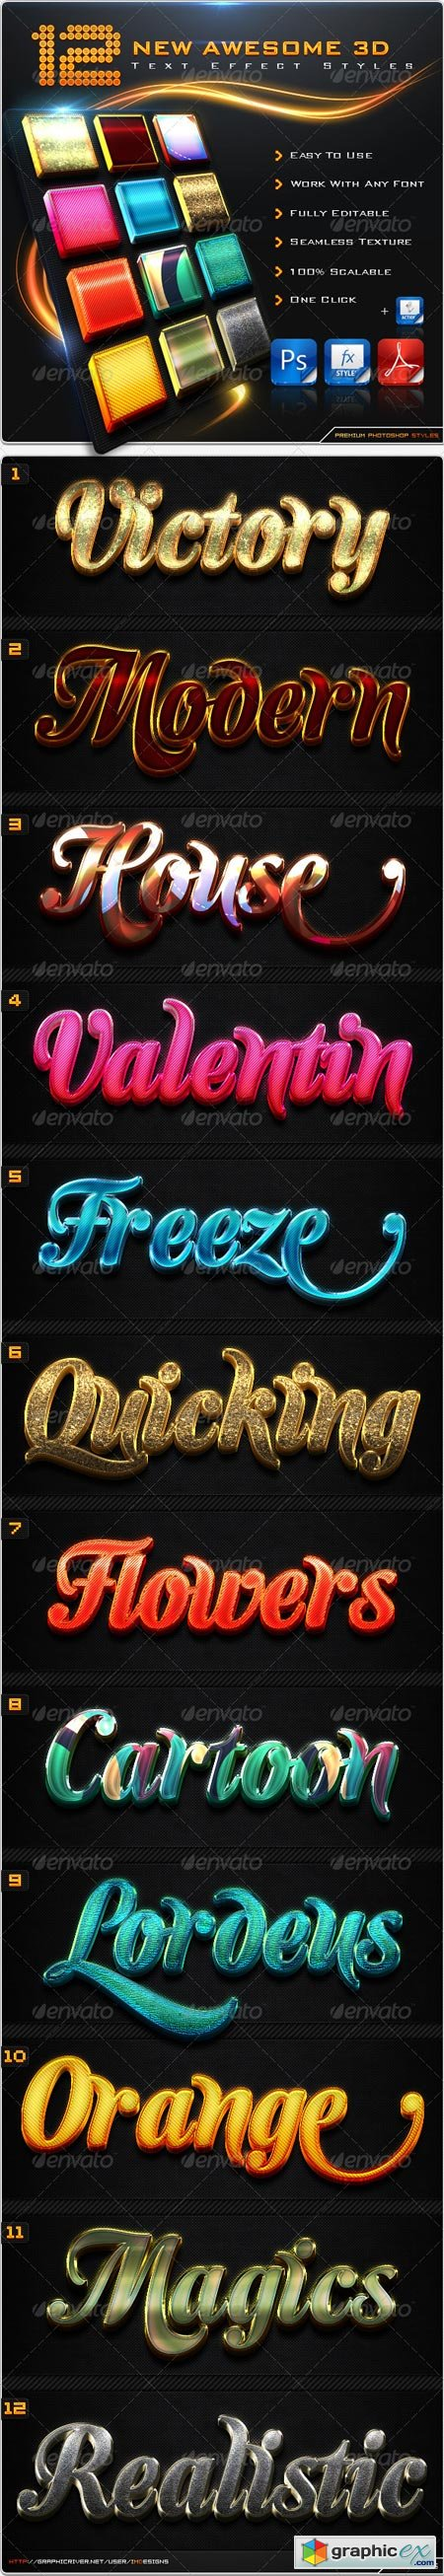 12 New Awesome 3D Text Effect Styles + Actions 8604061